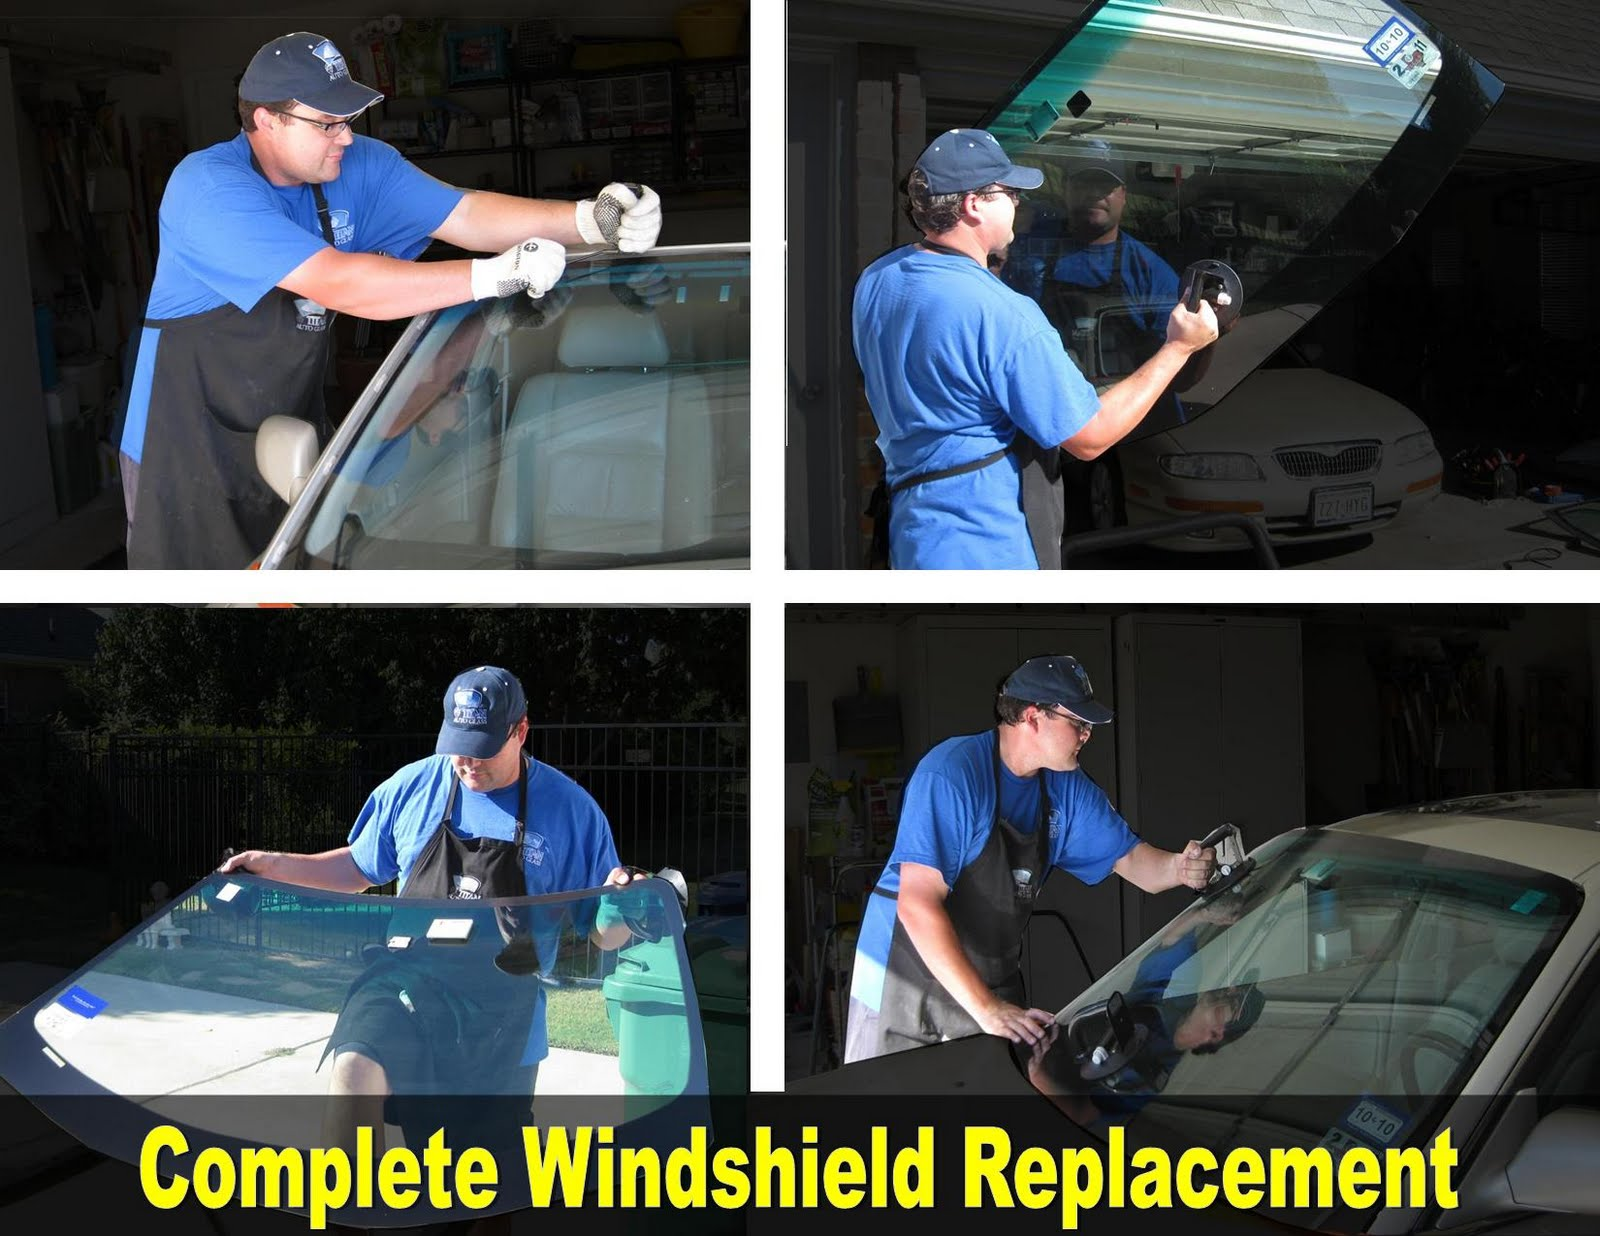 Windshield Replacement Quote | Calgary Windshield Replacement Quote Service Calgary Windshield